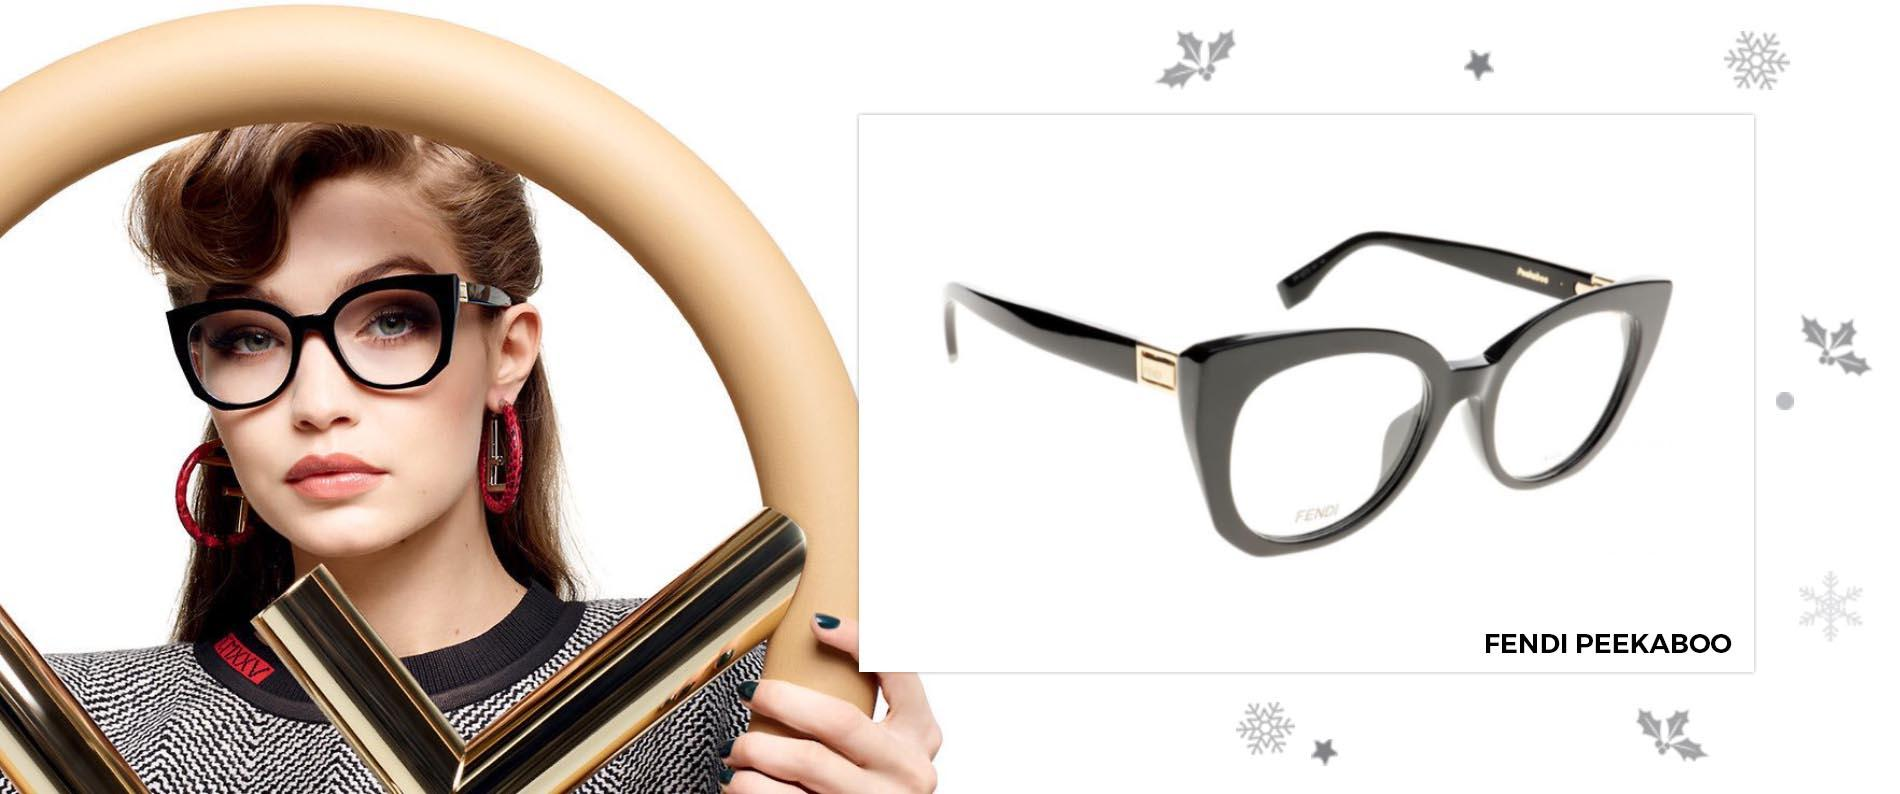 3a80865f298 Either way we ve got the glasses you need to look glam this season. Fendi  Peekaboo FF0272 807 50 ...